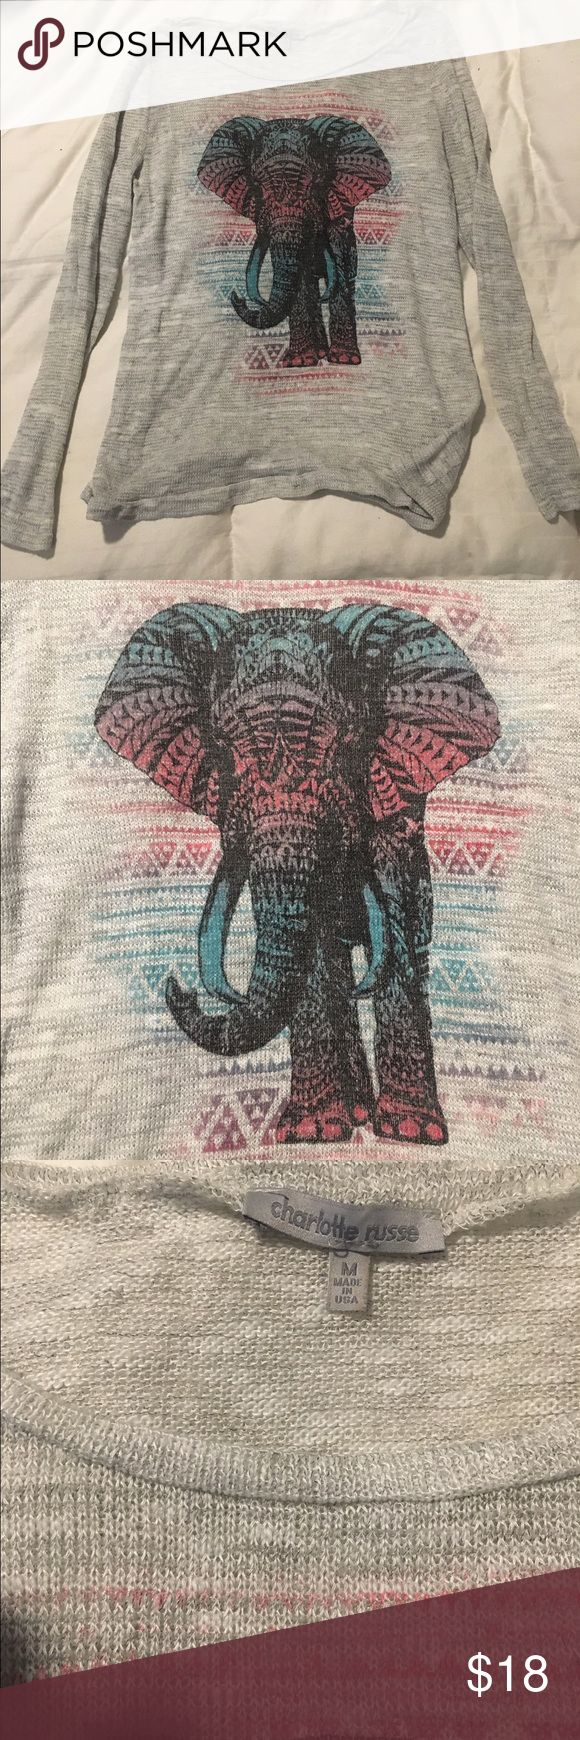 Charolette rouse elephant safari sweater M Charolette rouse lightweight  elephant safari sweater M, in great condition Charlotte Russe Sweaters Crew & Scoop Necks